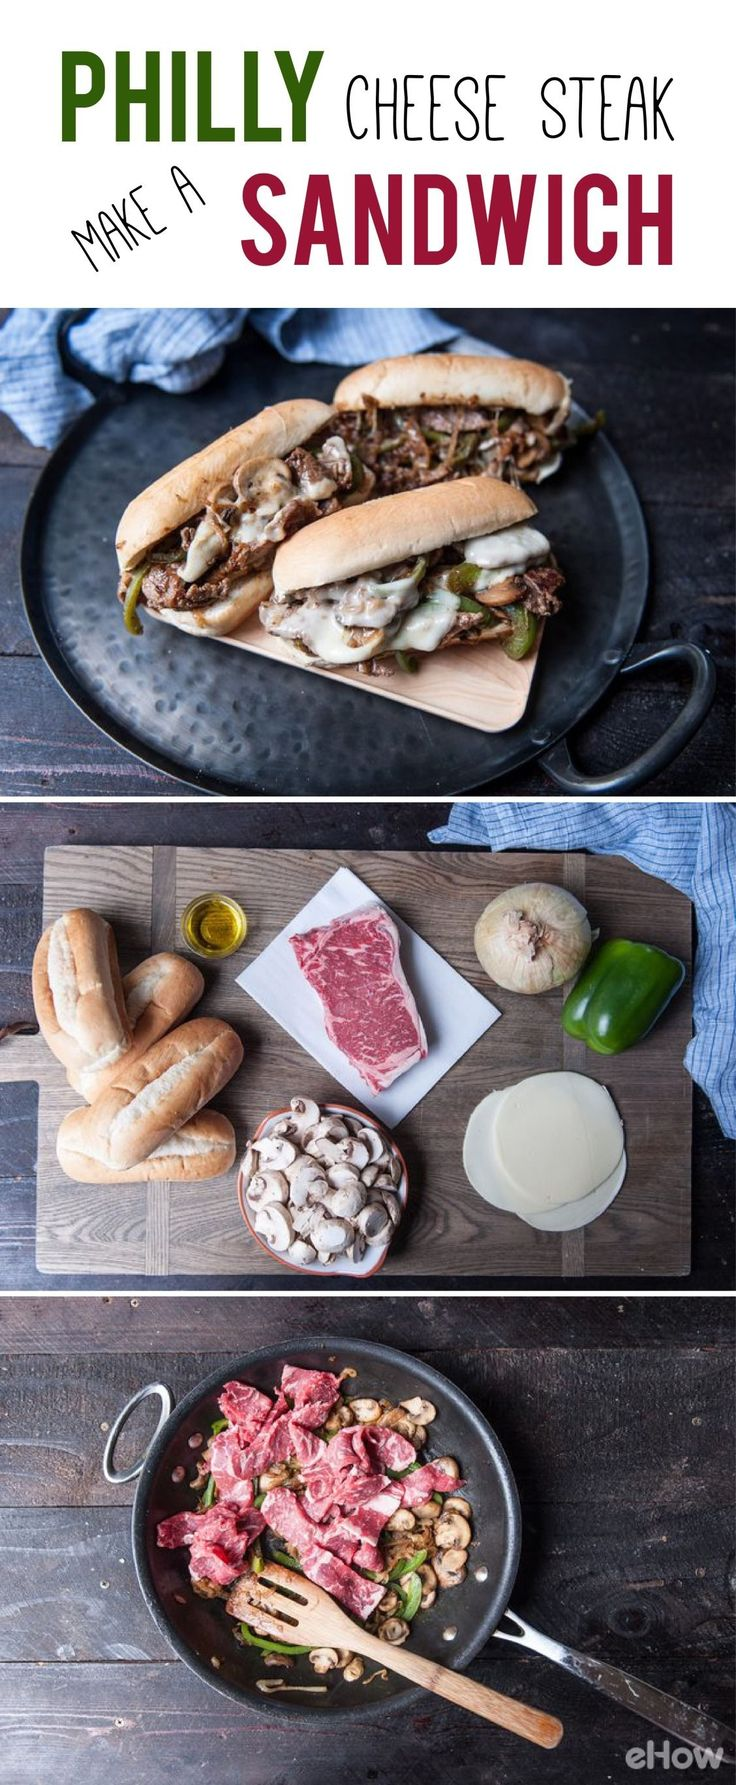 The ultimate Philly Cheese Steak sandwich is made with sweet caramelized onions, tangy provolone, a soft roll and, of course, the flavorful steak! A must have recipe to master ASAP.